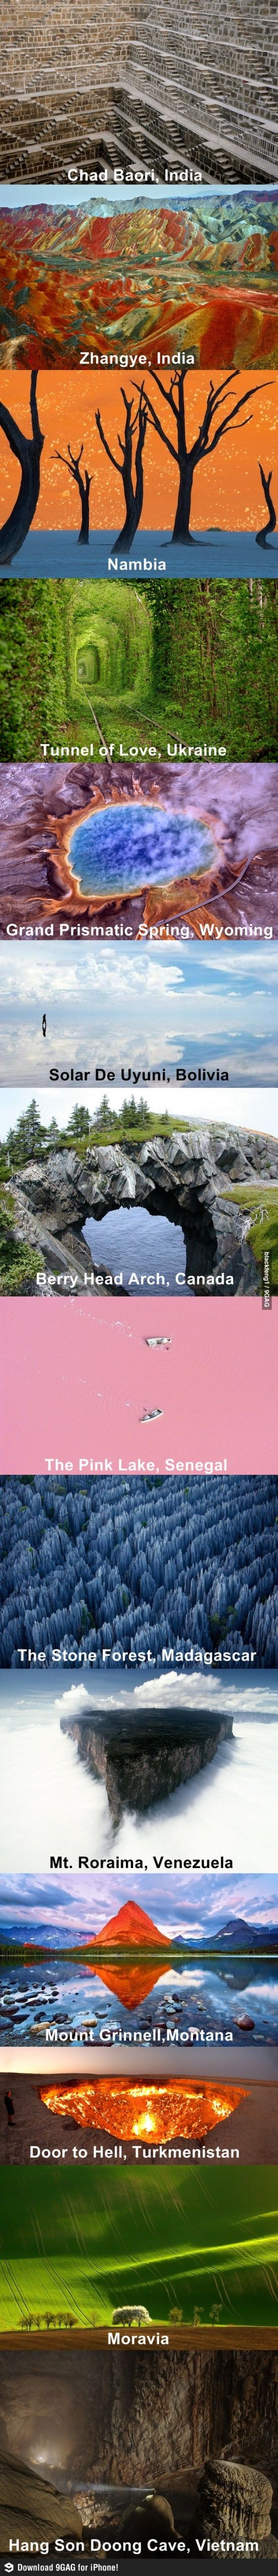 Places all over the world that look so unrealistic.